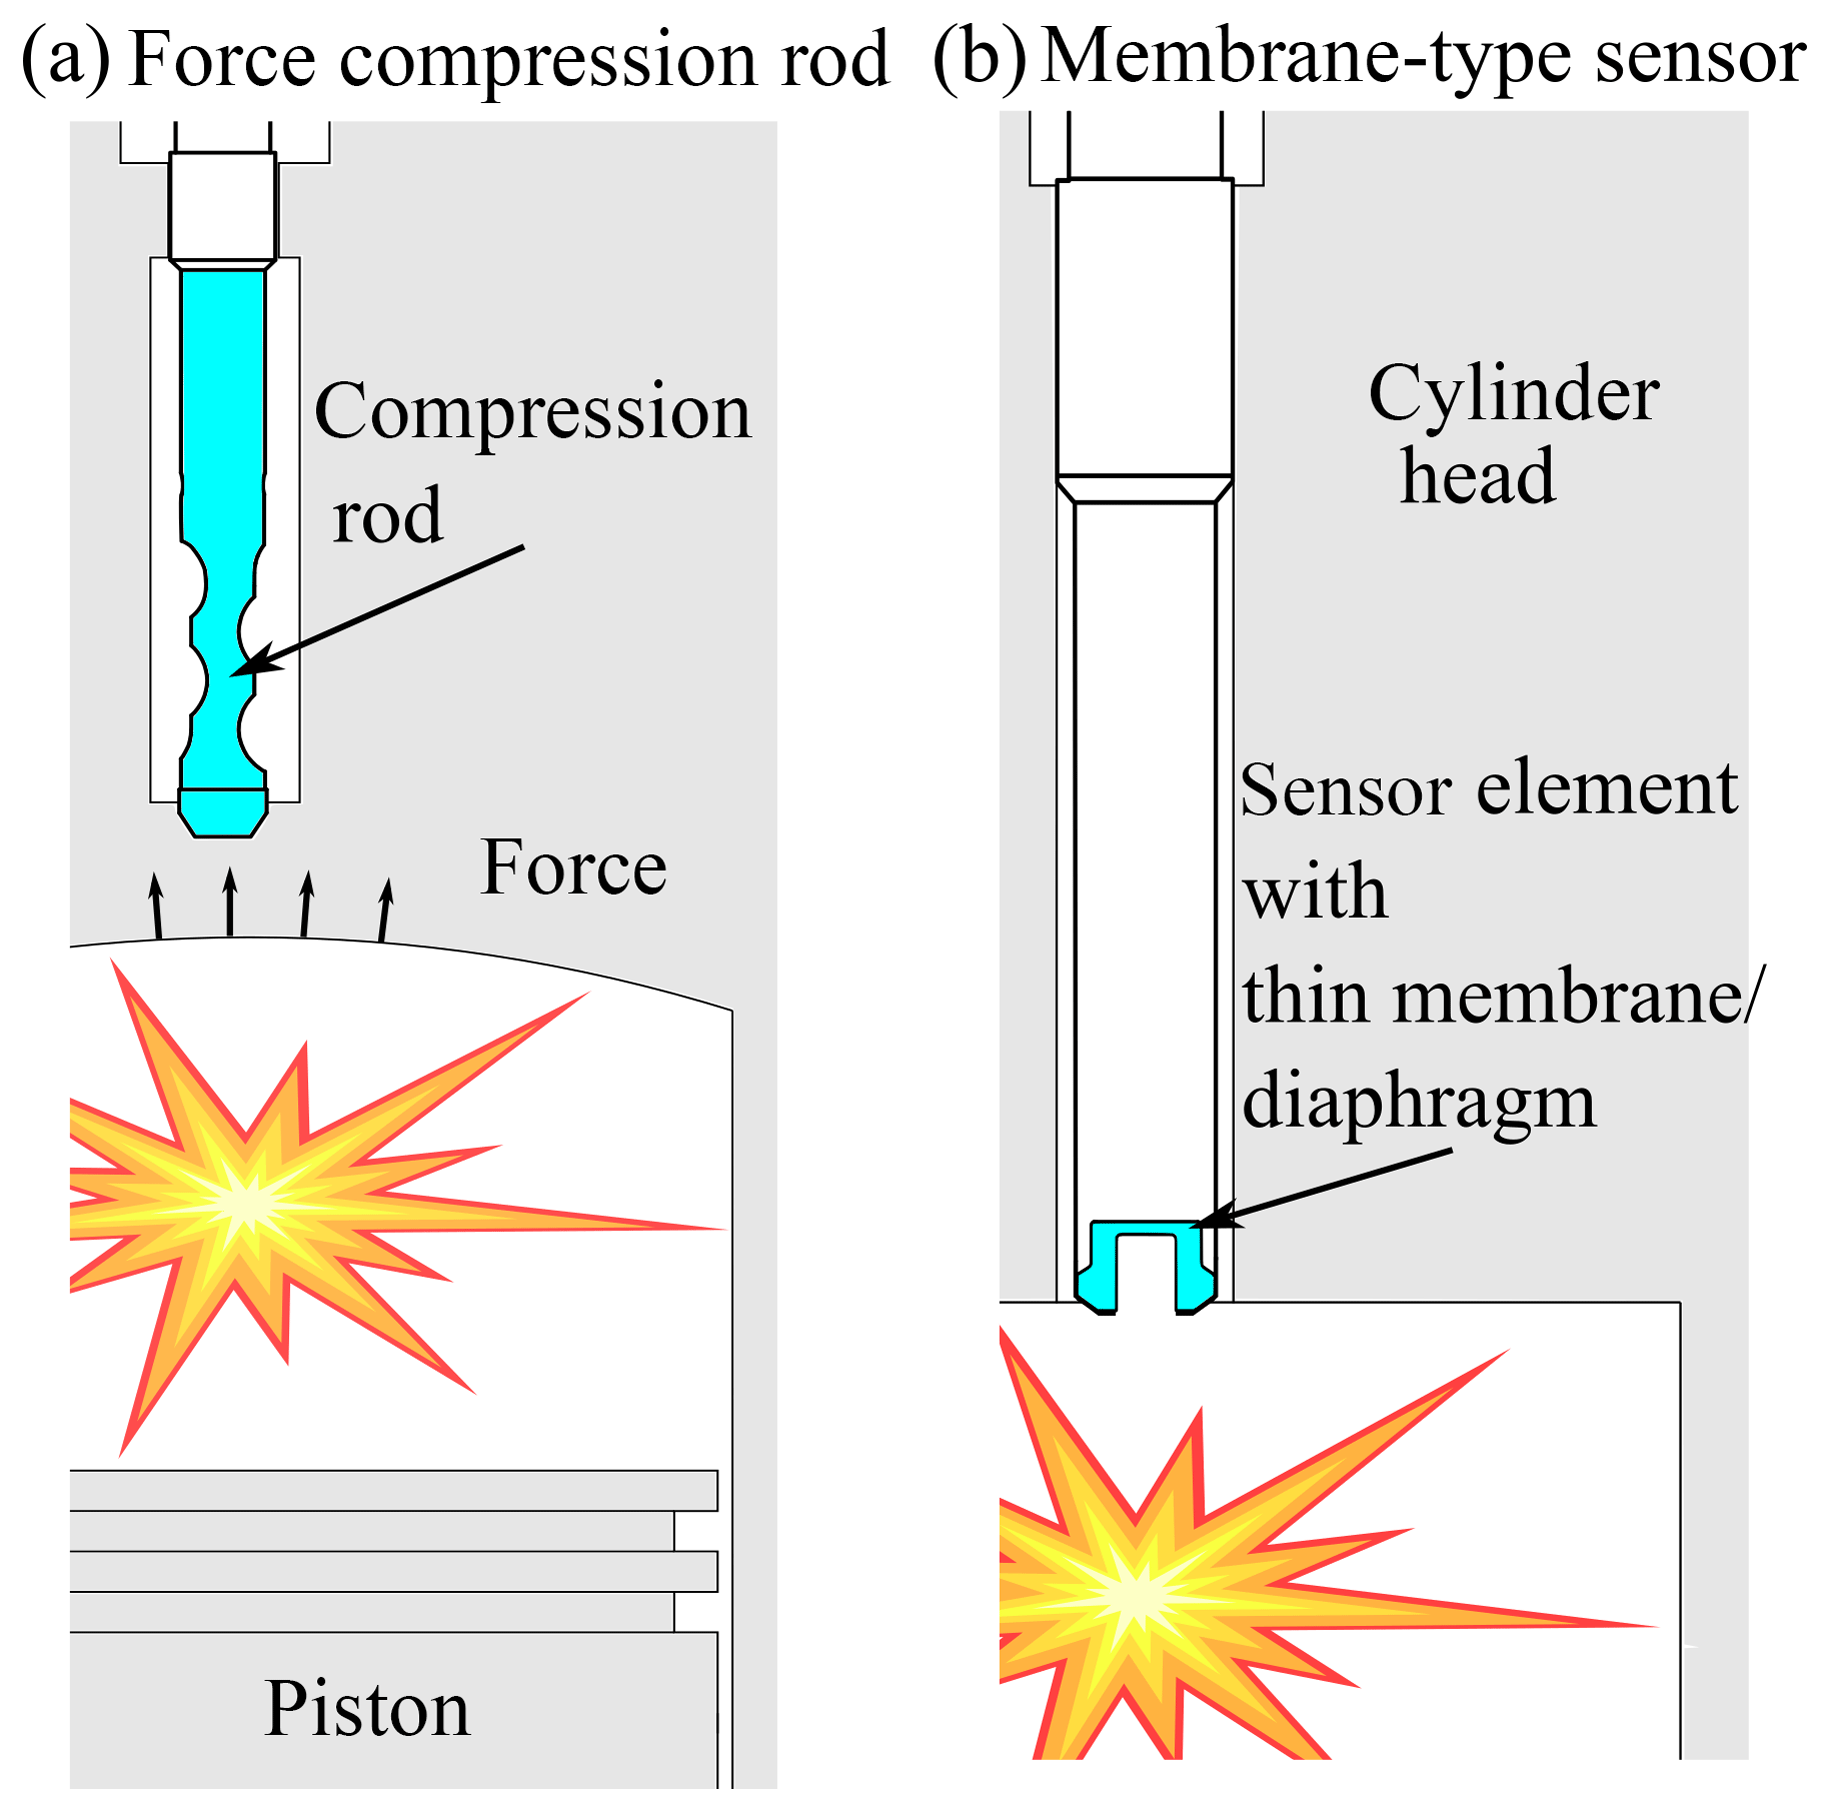 Piezoelectric pressure sensor combined with spark plugs for piston engine index